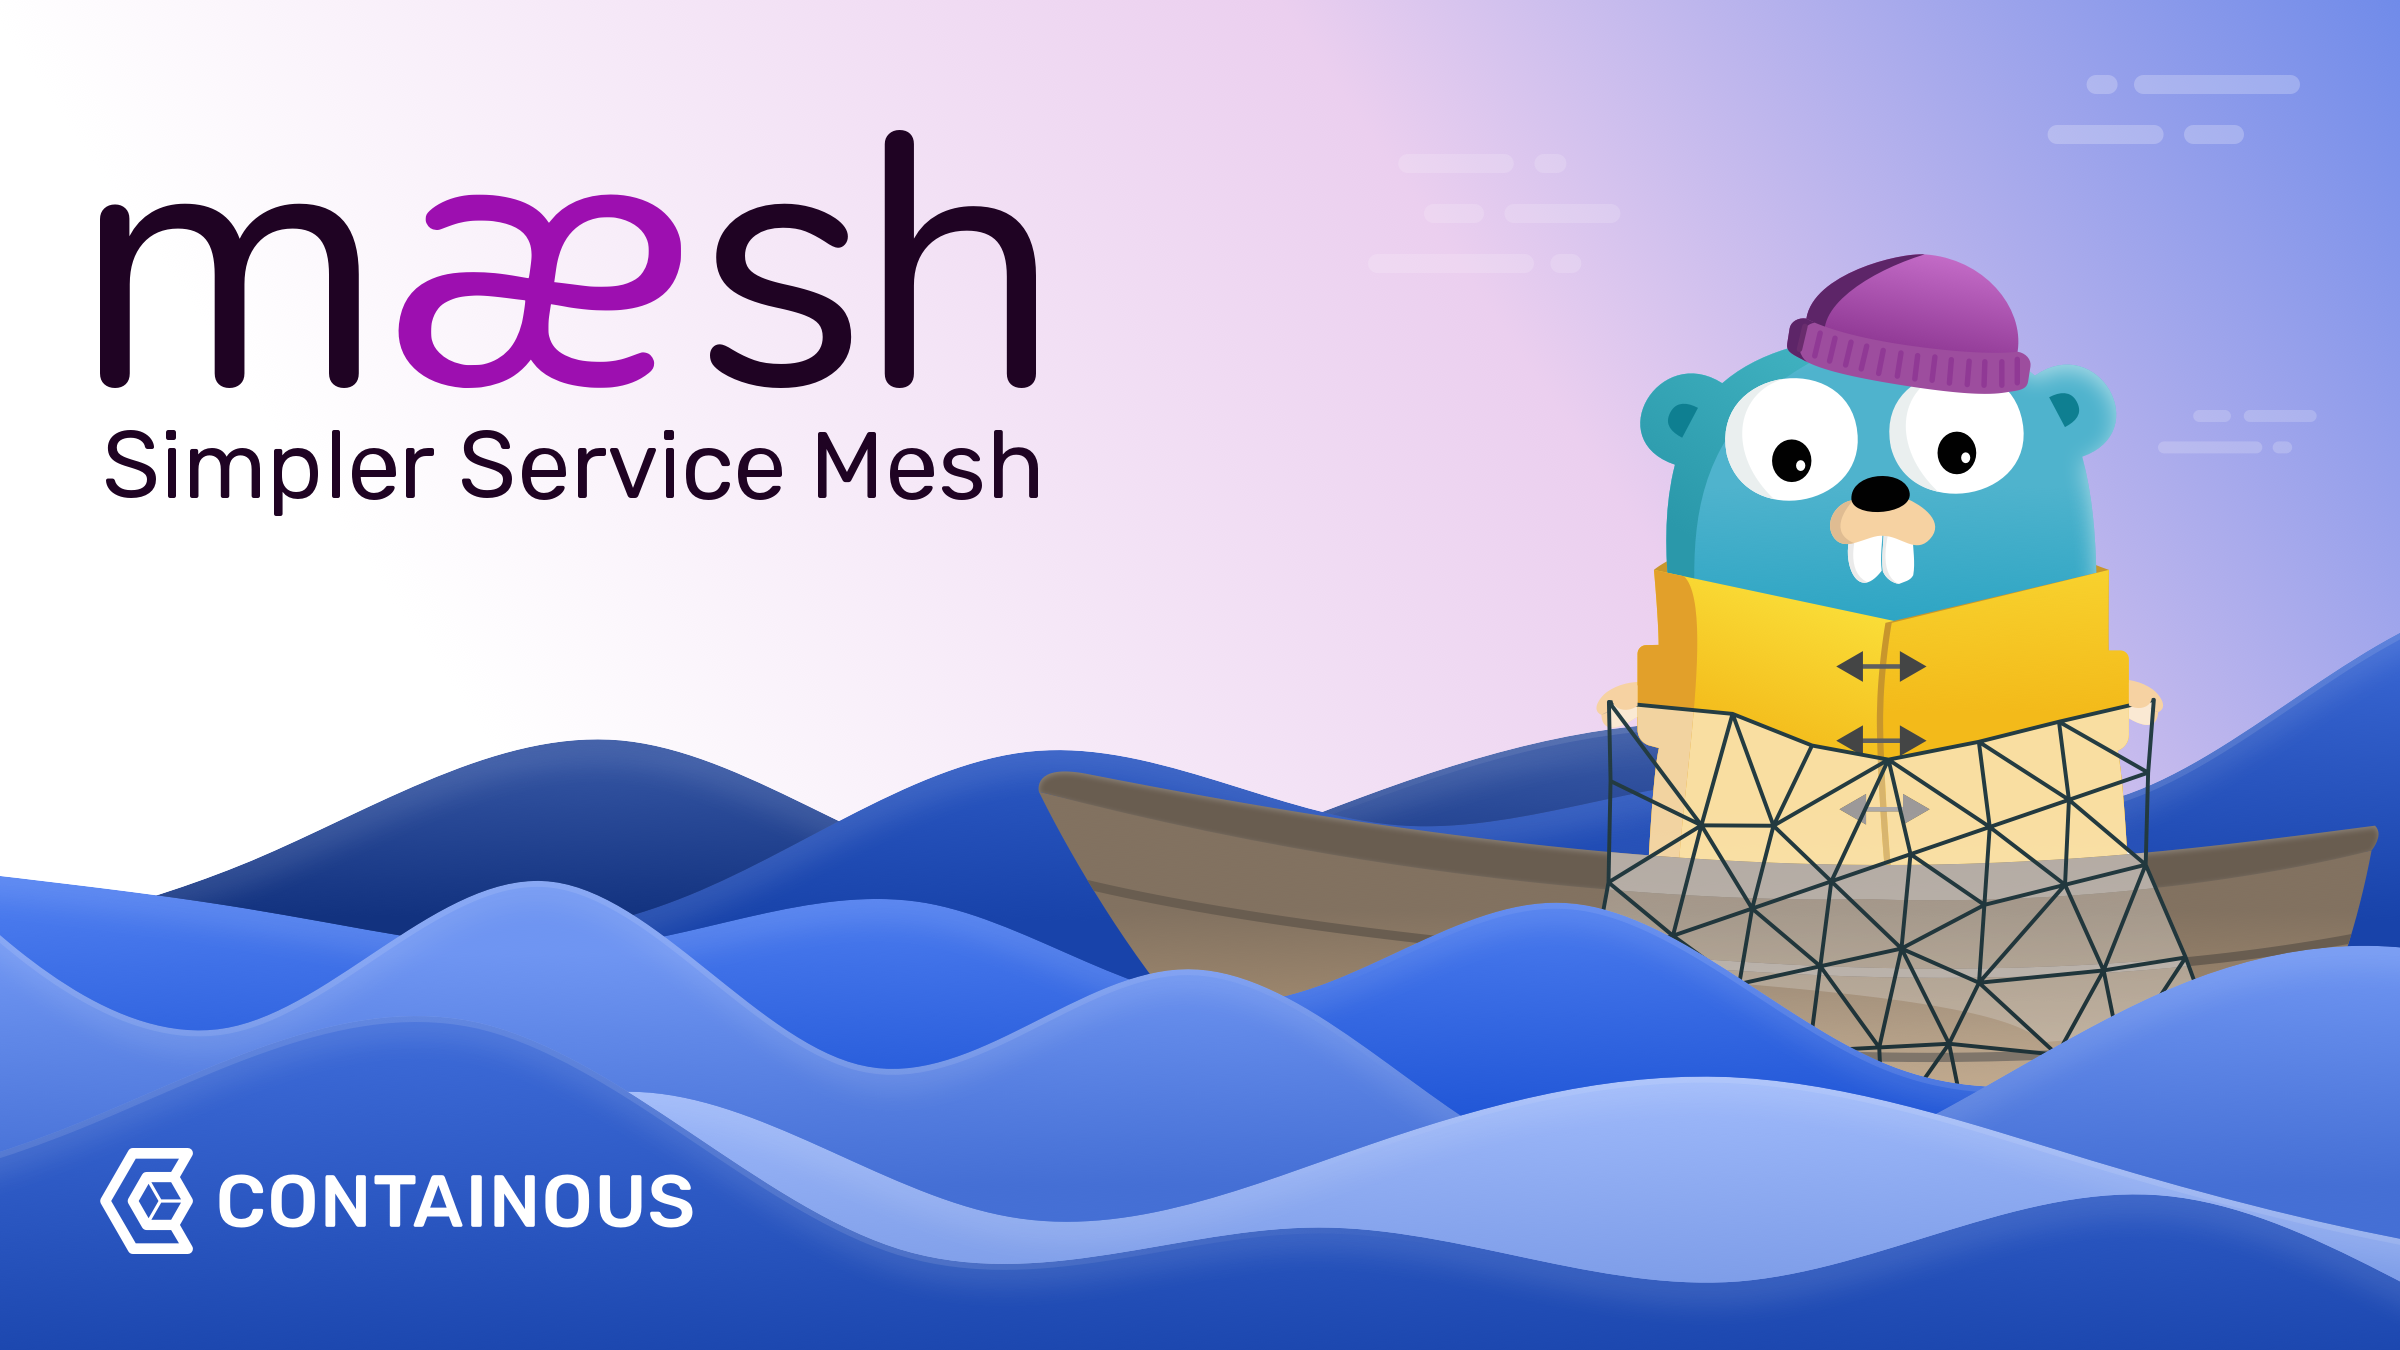 Announcing Maesh, a Lightweight and Simpler Service Mesh Made by the Traefik Team